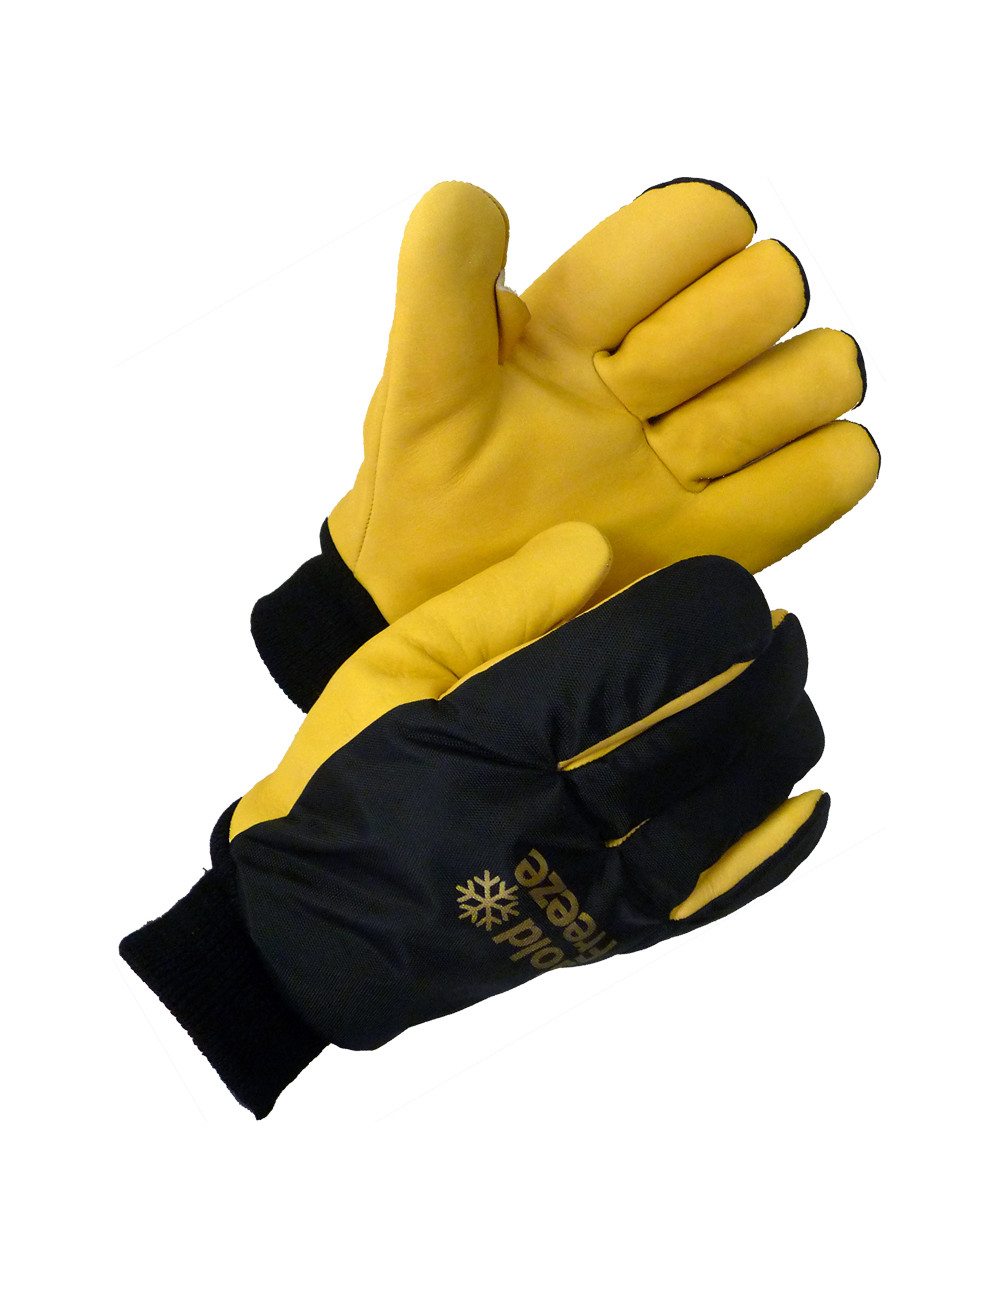 Coldstore gloves for freezers and cold rooms